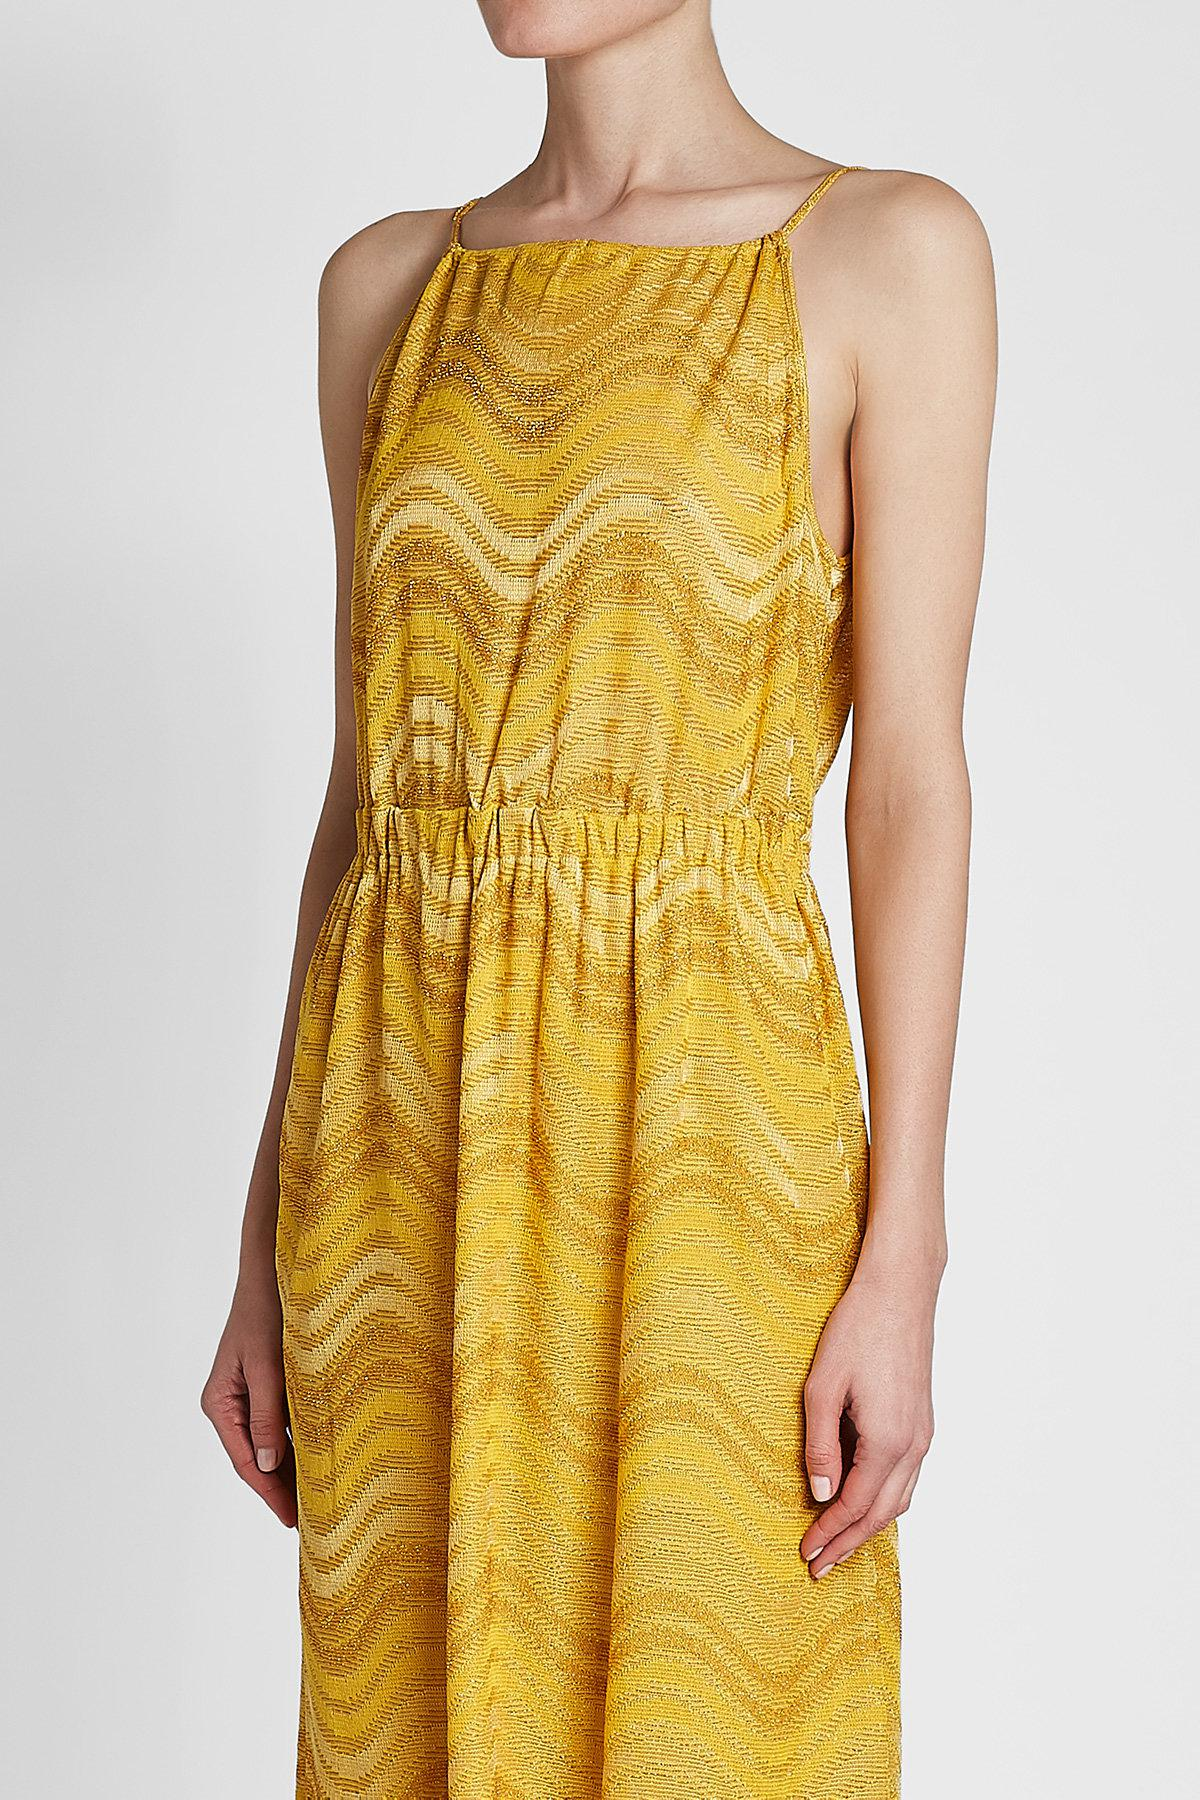 894a95f52b5b Lyst - M Missoni Knit Dress With Metallic Thread in Yellow